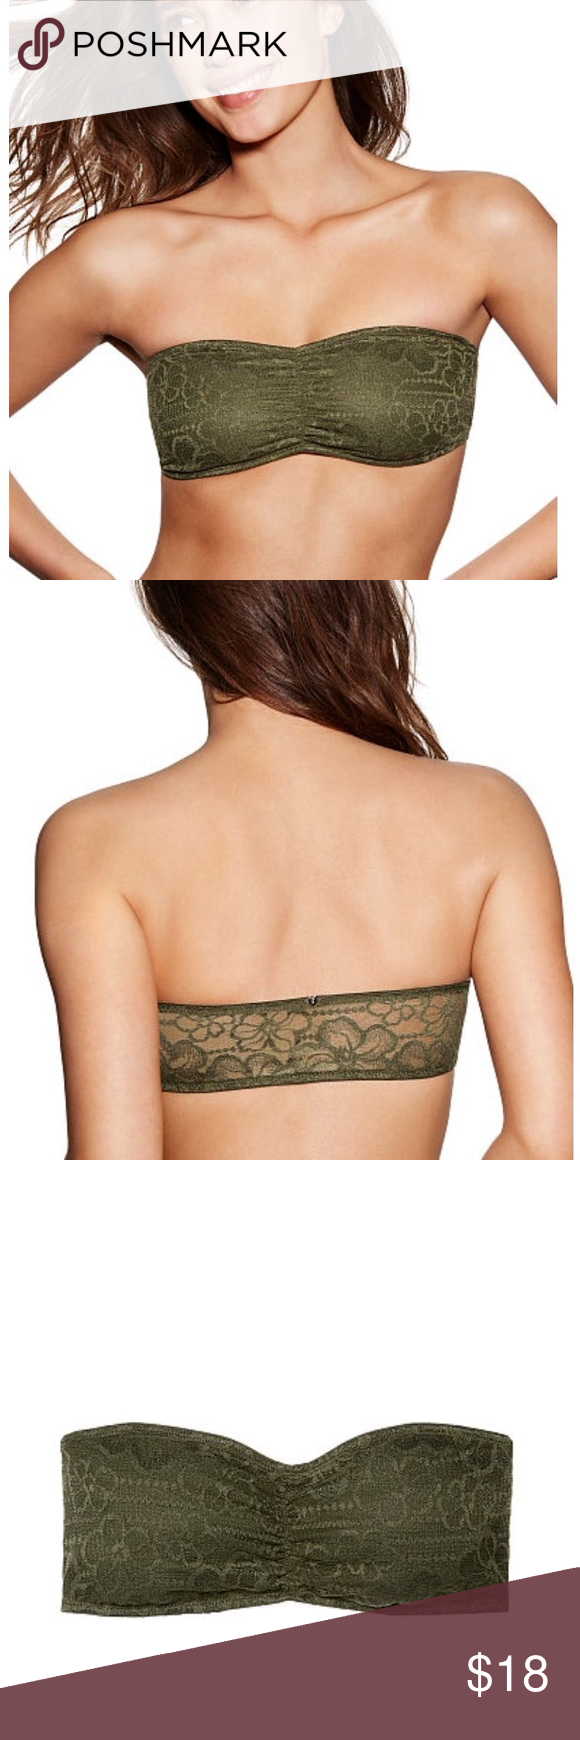 4b3753d67925c Victoria s Secret Olive Green M Lace Bandeau Bra New Victoria s Secret  Olive Green Tropical Lace Bandeau Bra Brand New With Tags !